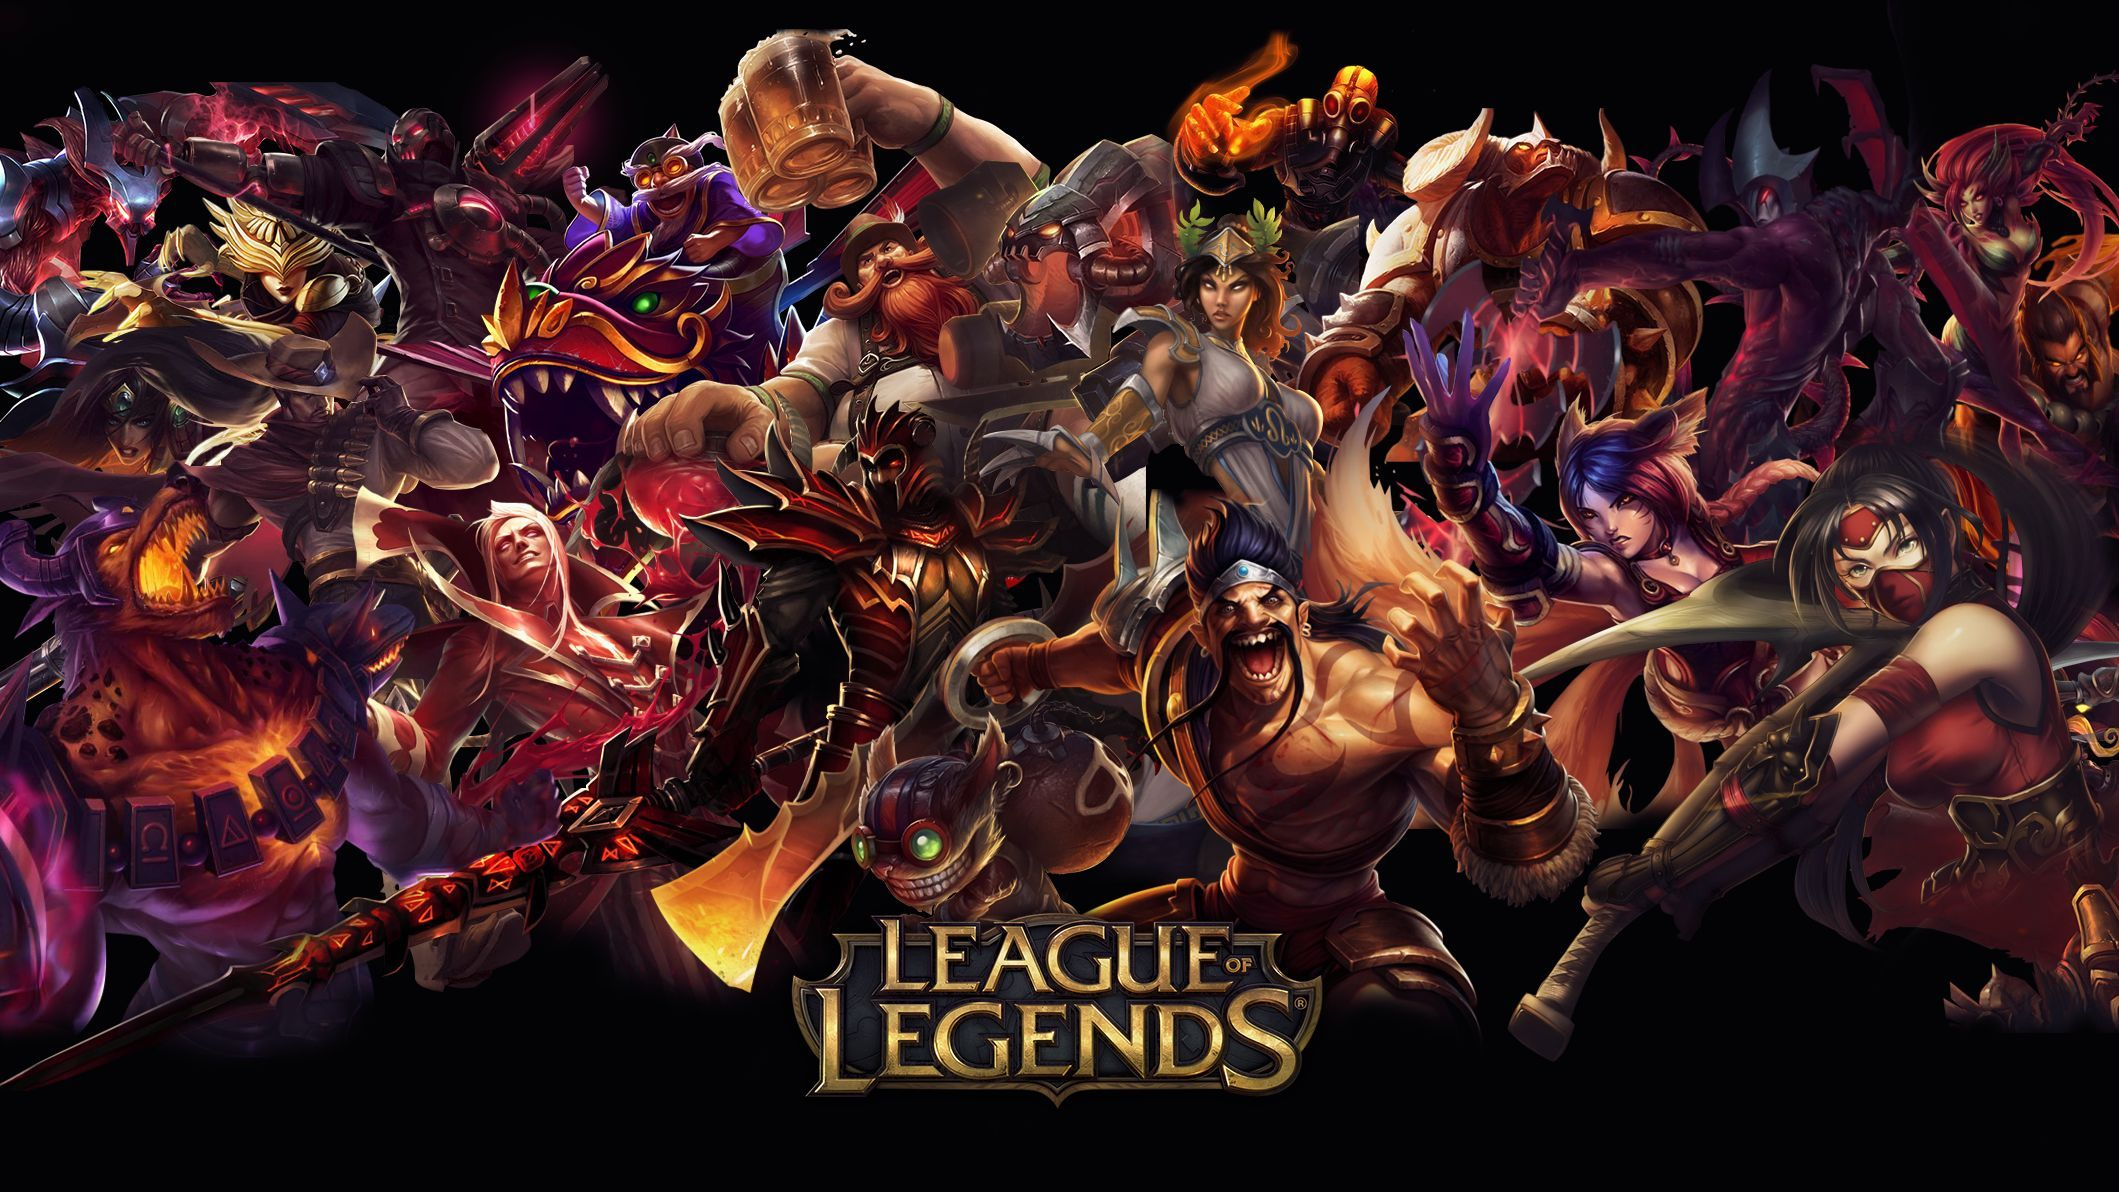 league of legends 1920x1080 wallpaper